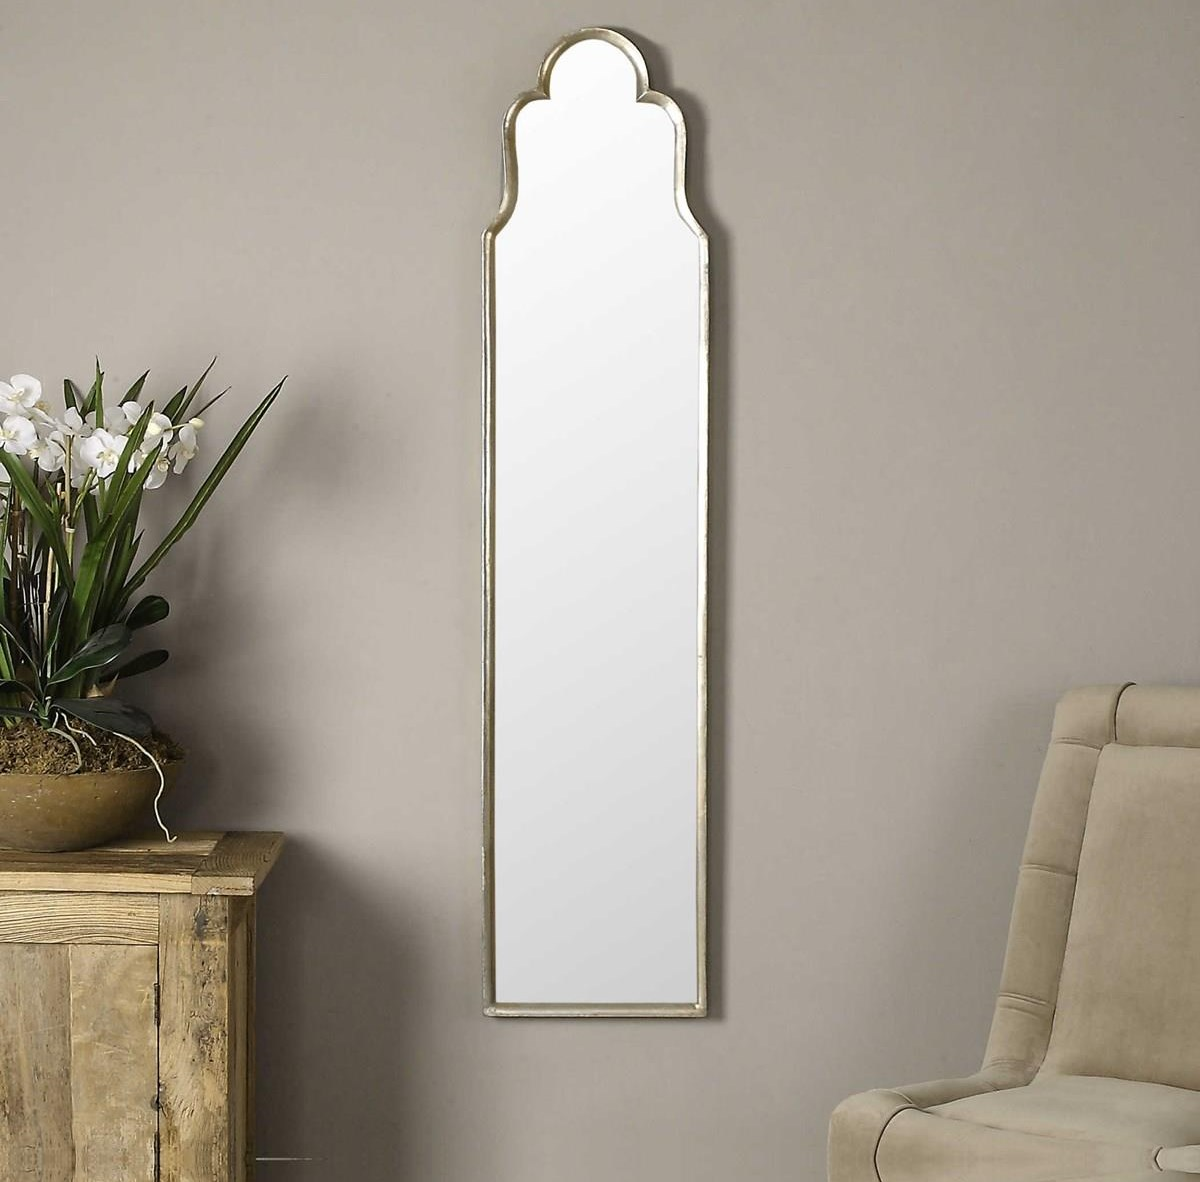 Mirrors NAOMI WALL MIRROR by Unique at Walker's Furniture